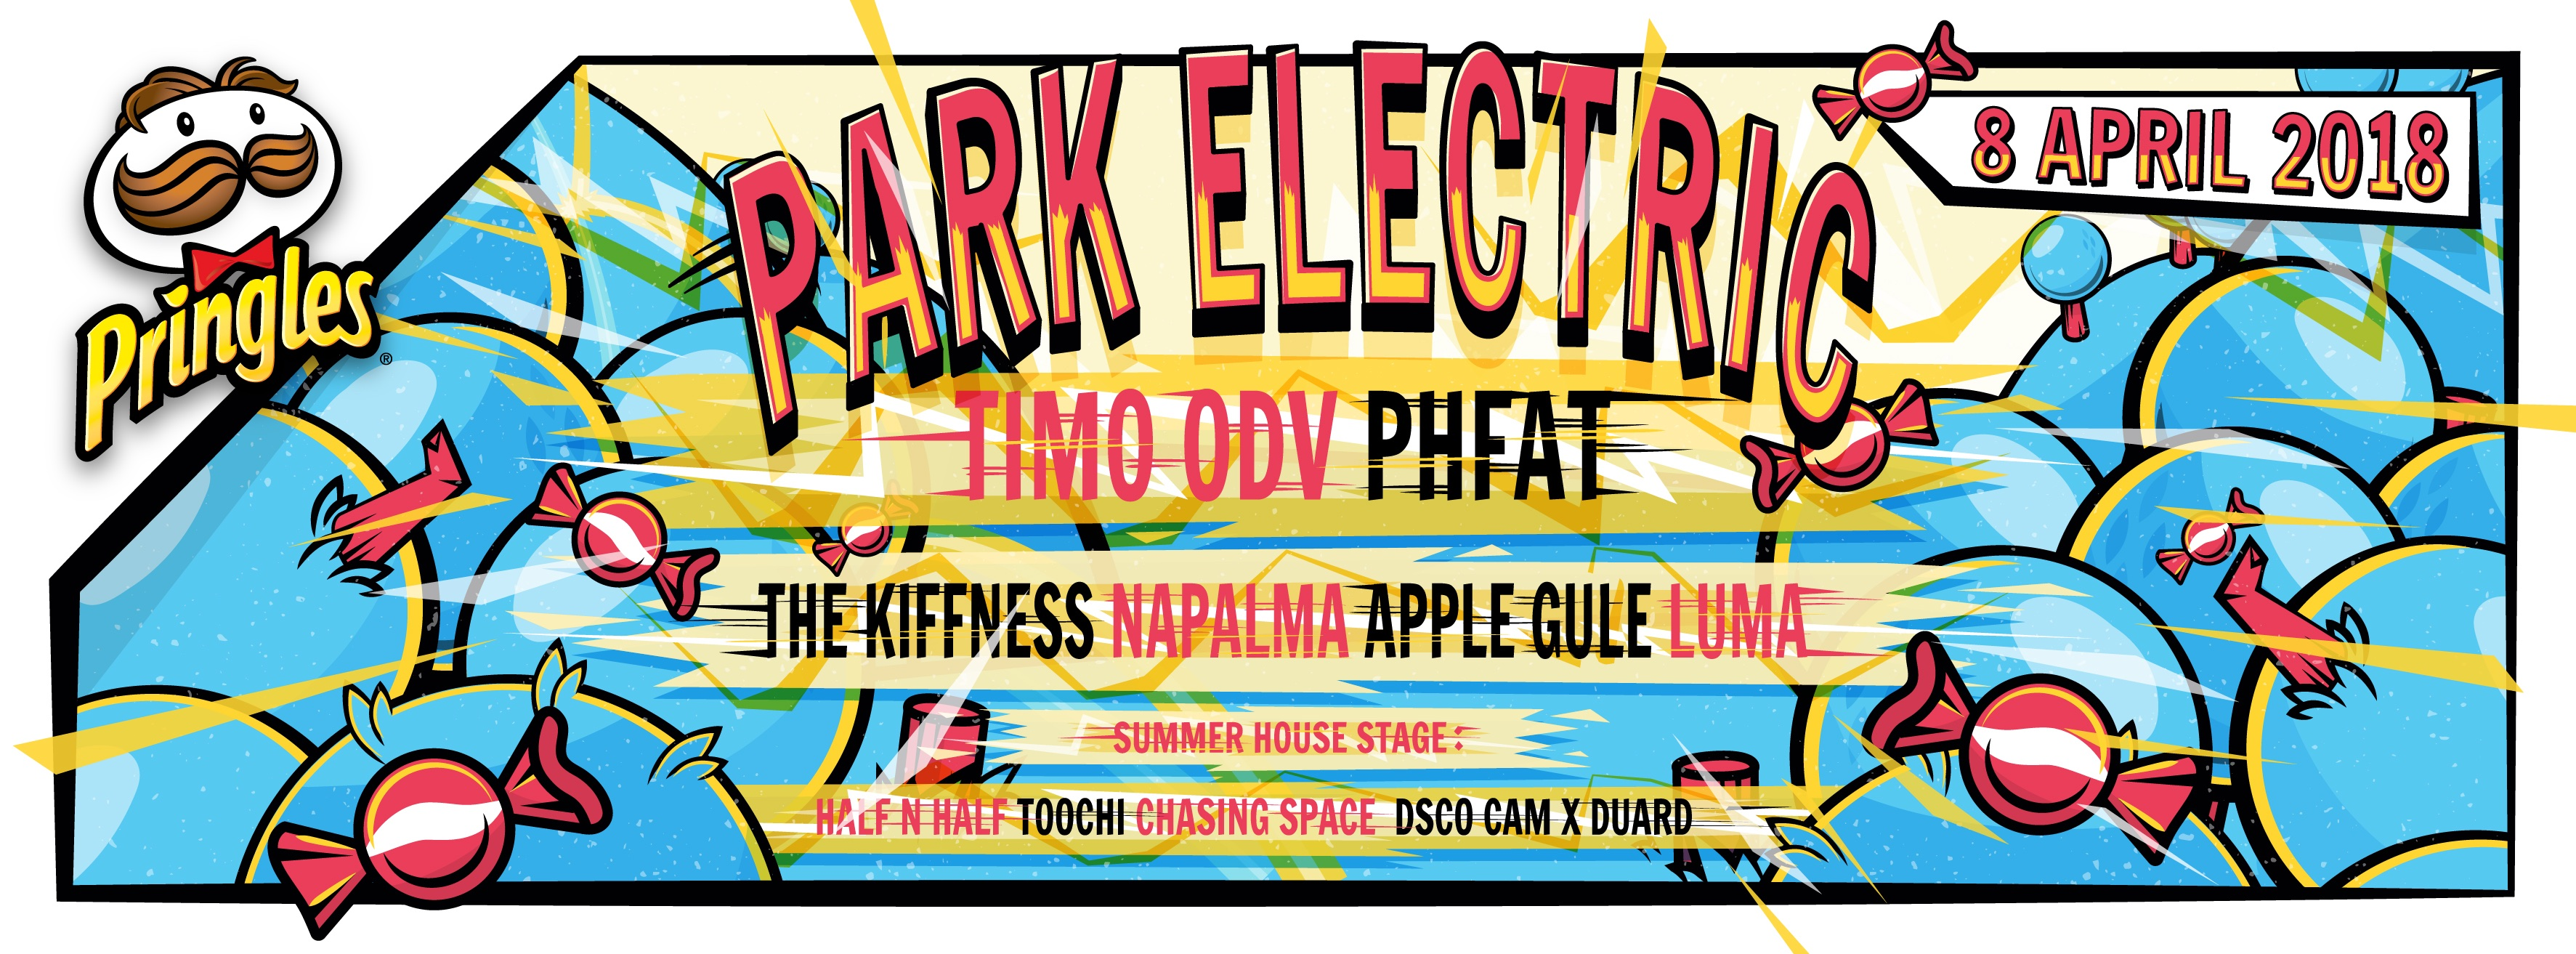 GIVEAWAY: Park ELECTRIC Tickets